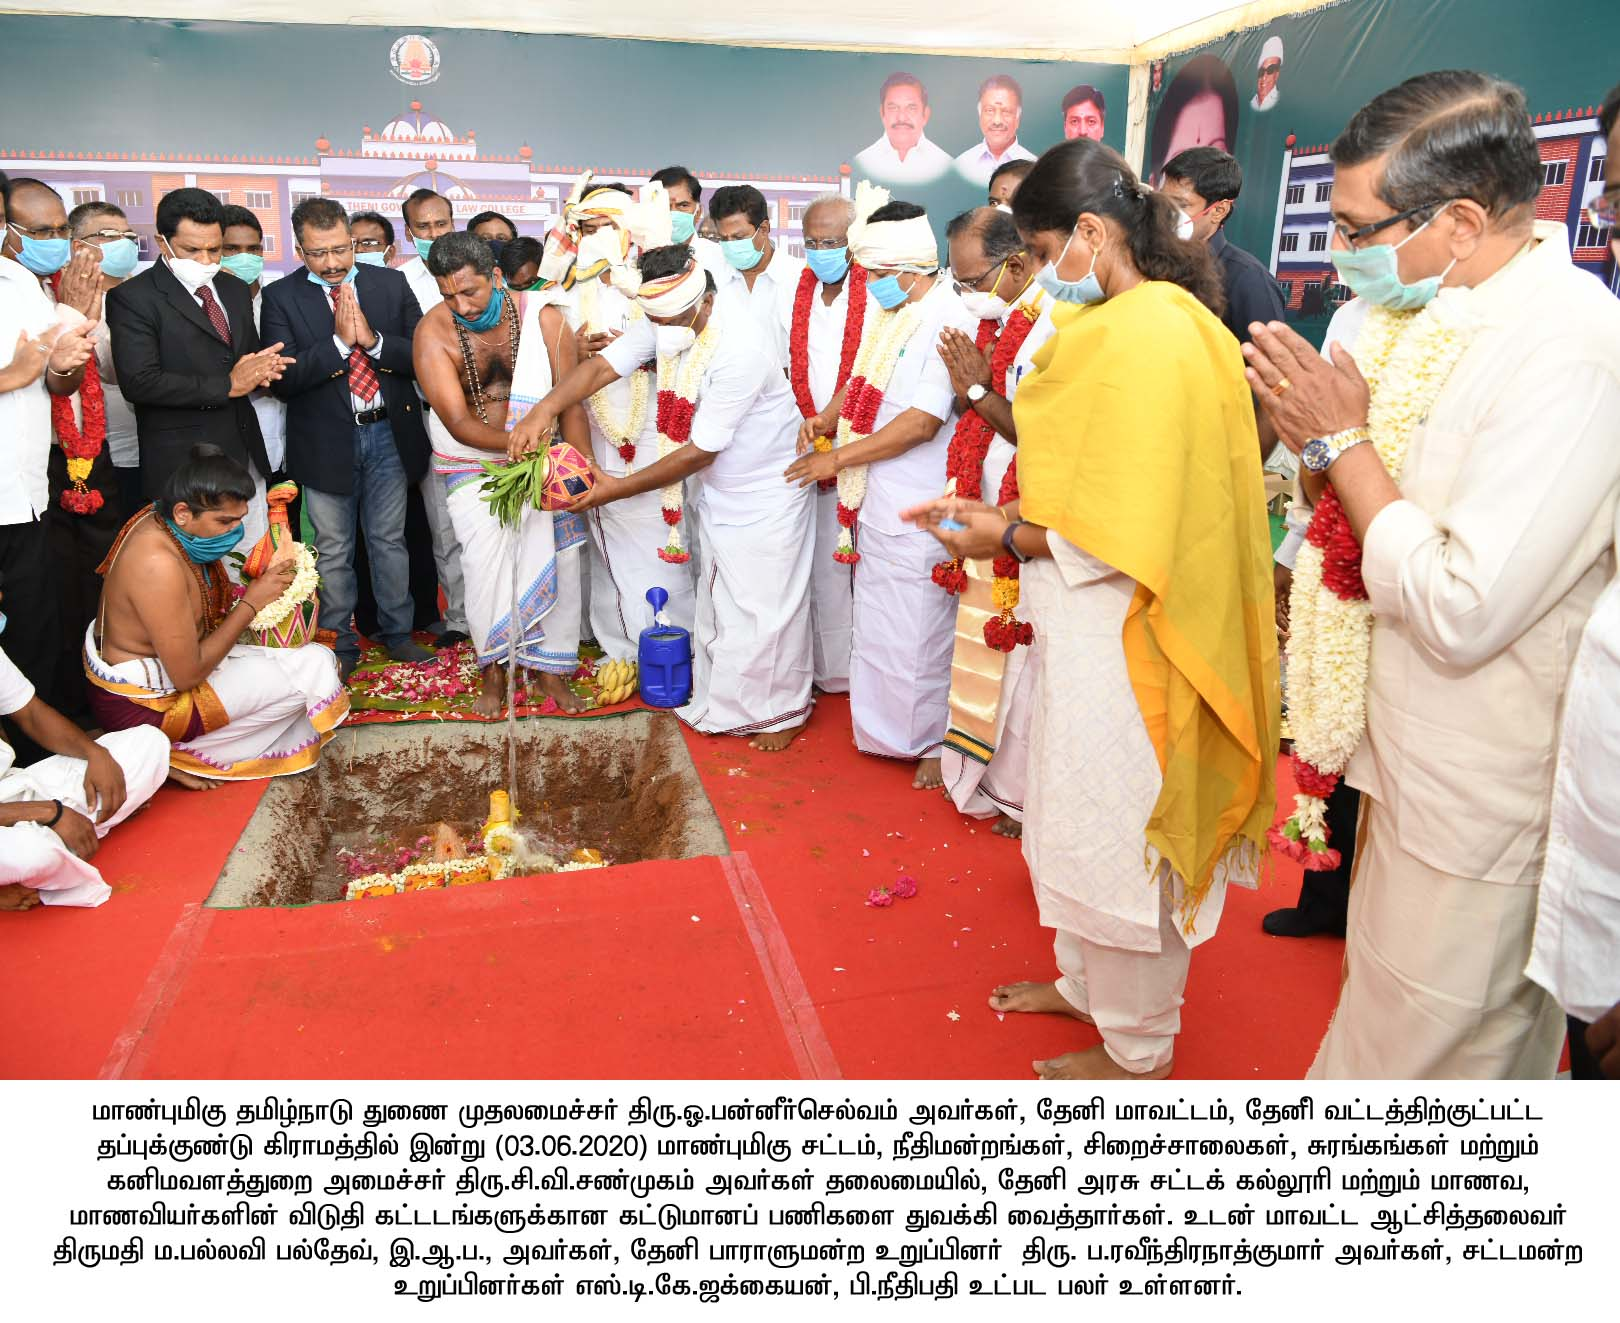 Law college foundation laid